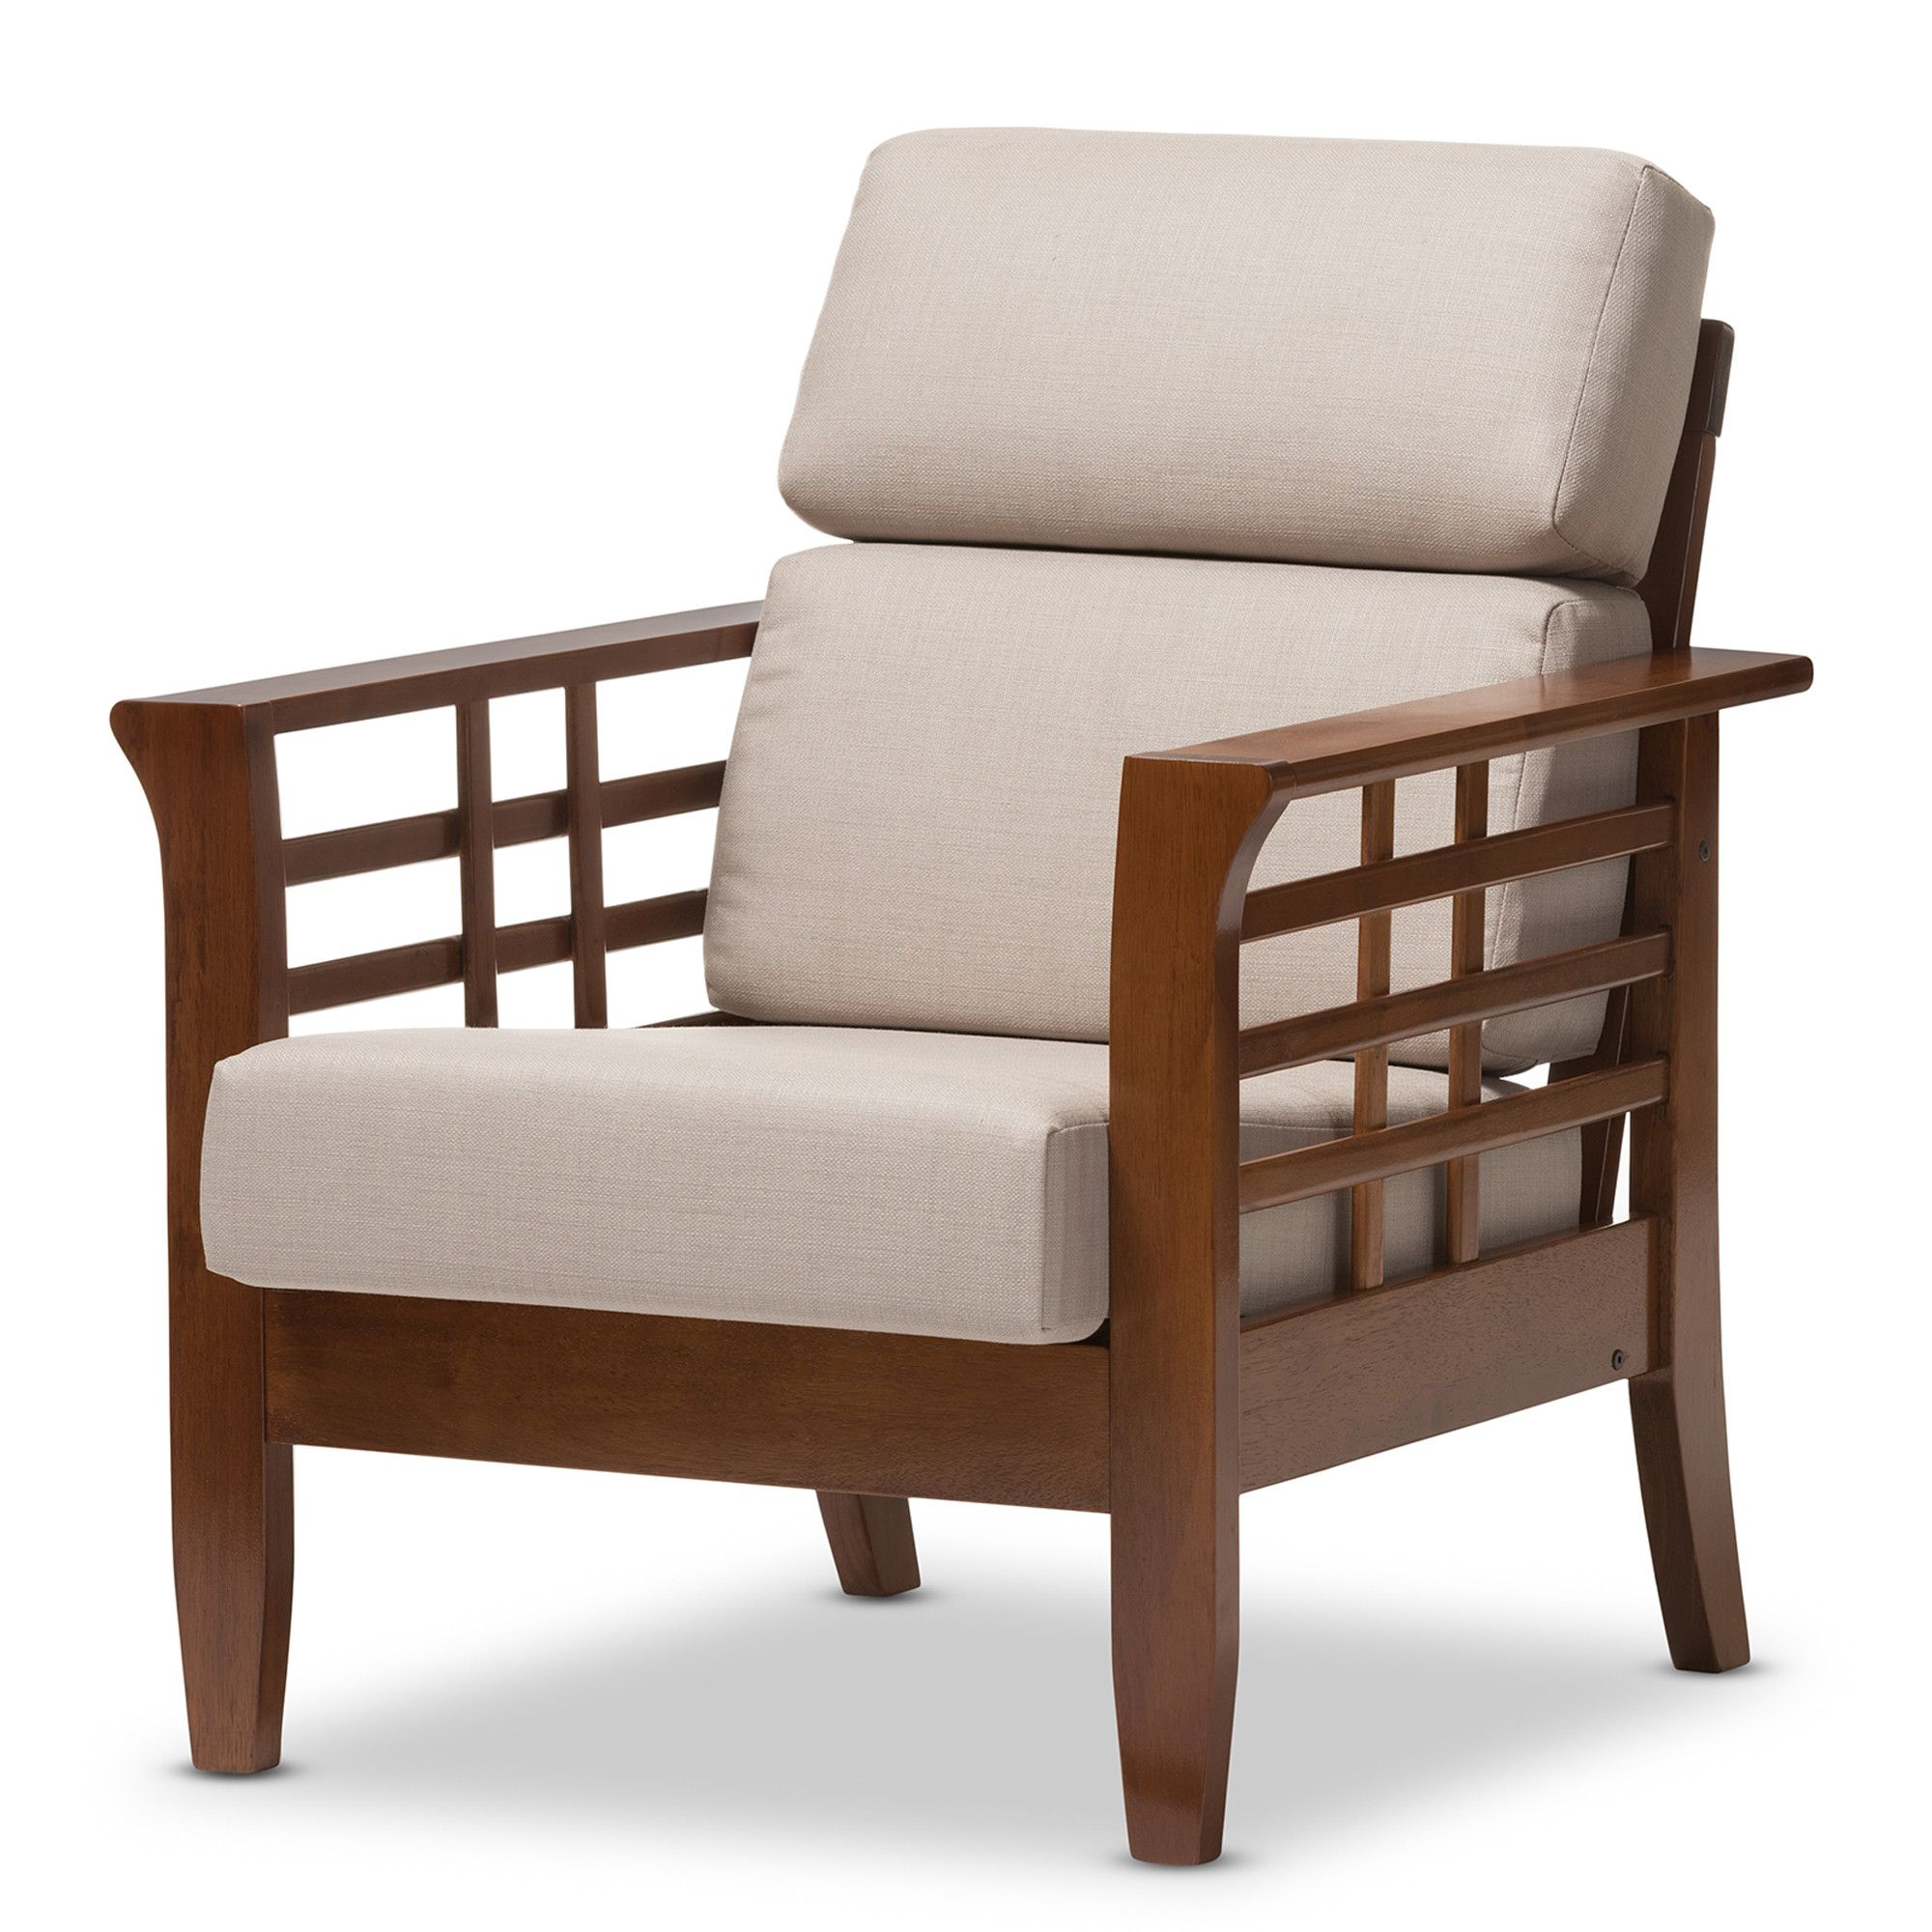 Orlie Lounge Chair Beige Lounge Chair Lounge Chairs Living Room Mission Style Living Room